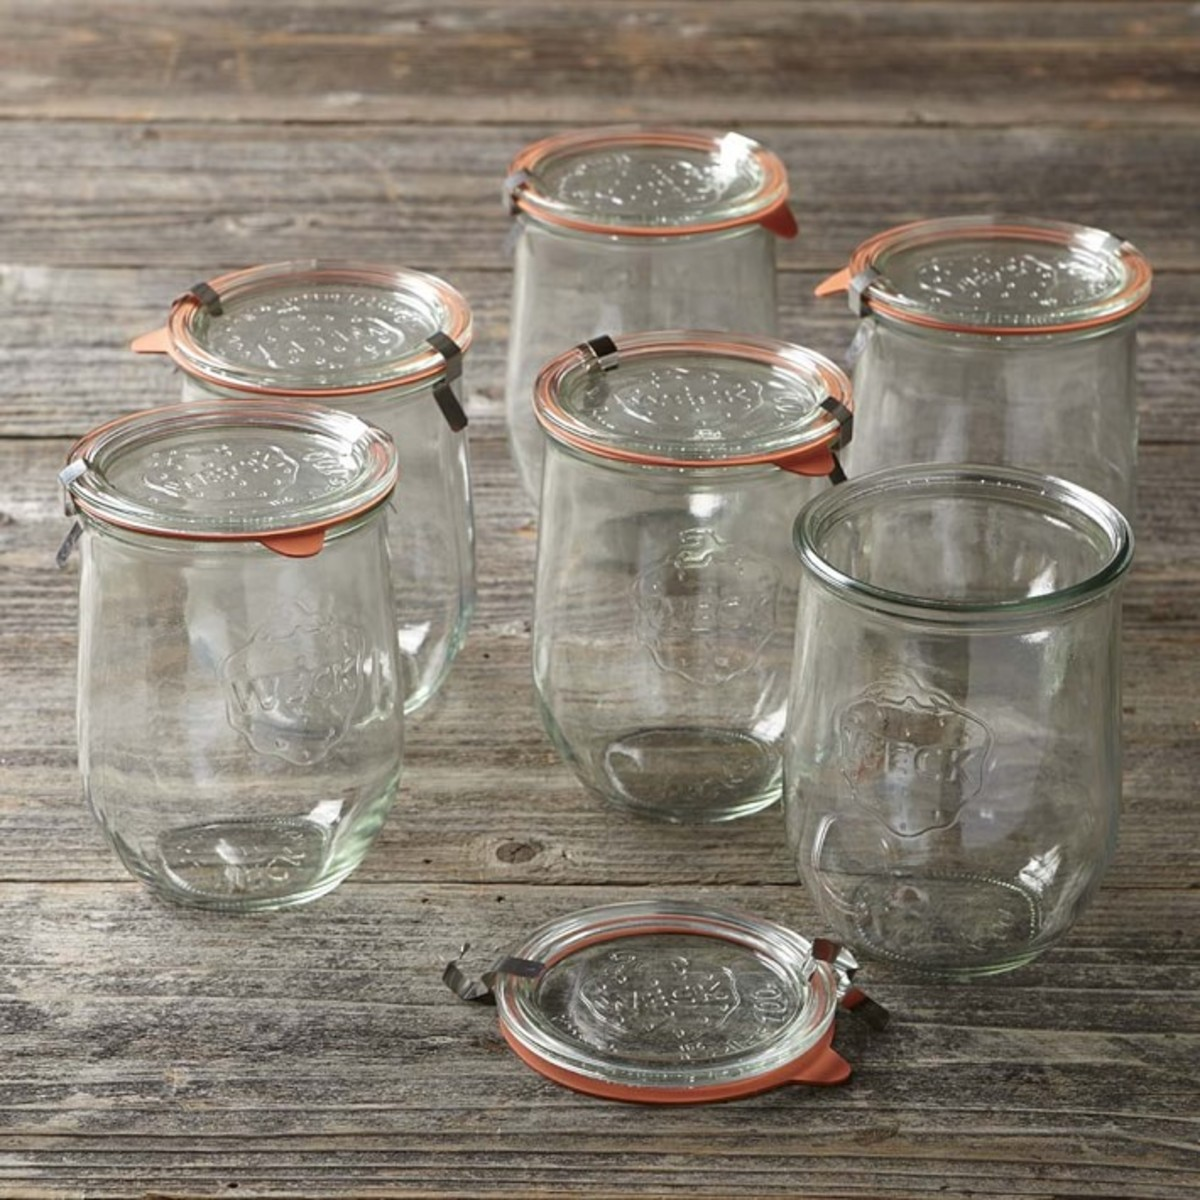 Use Weck Tulip Jars to store your homemade syrups and anything else!